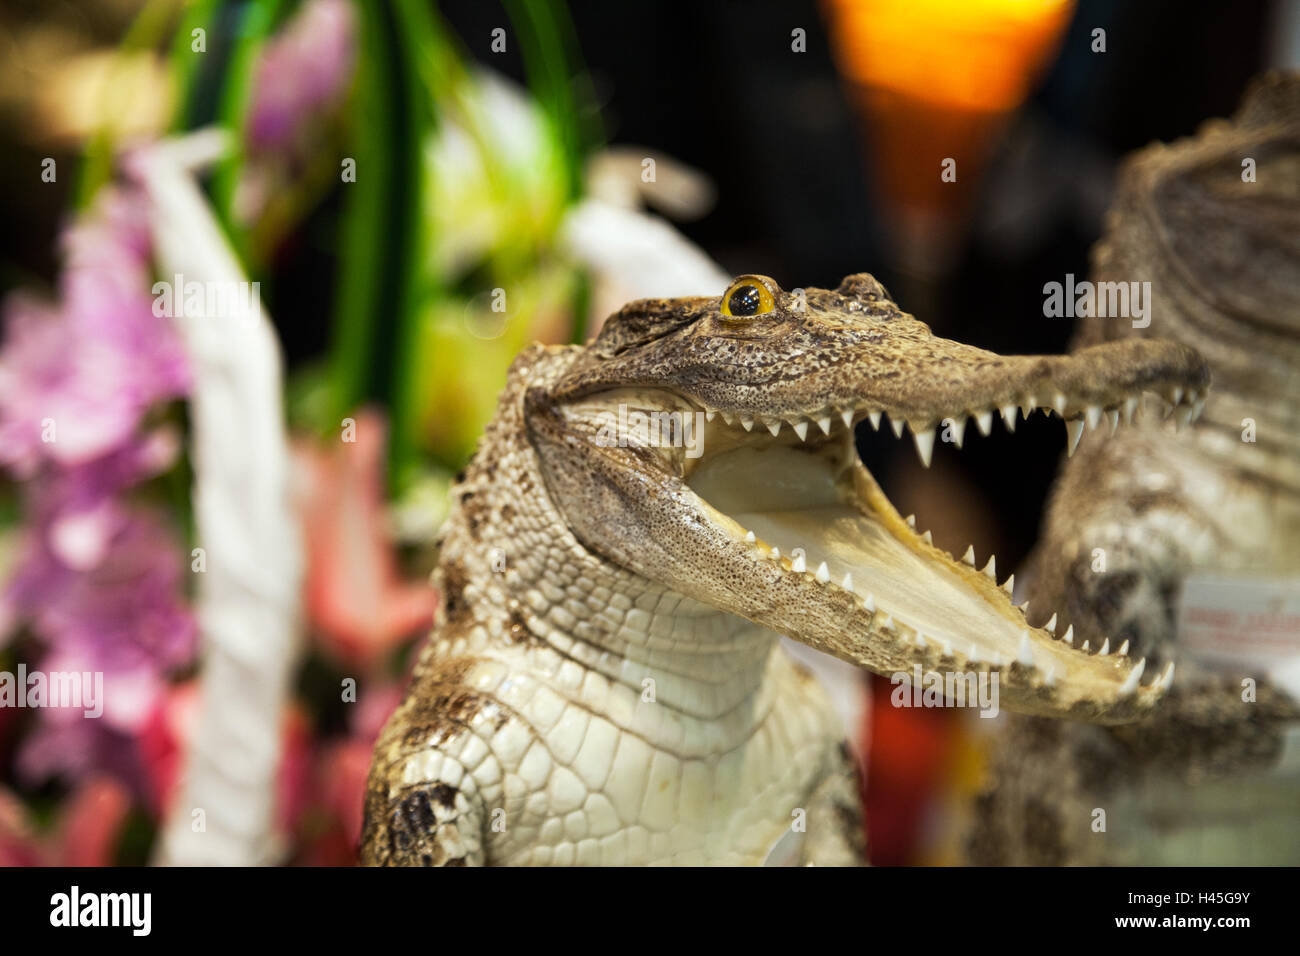 Small cute crocodile laughing with open mouth with lot of teeth. Reptile predator dangerous attack - Stock Image